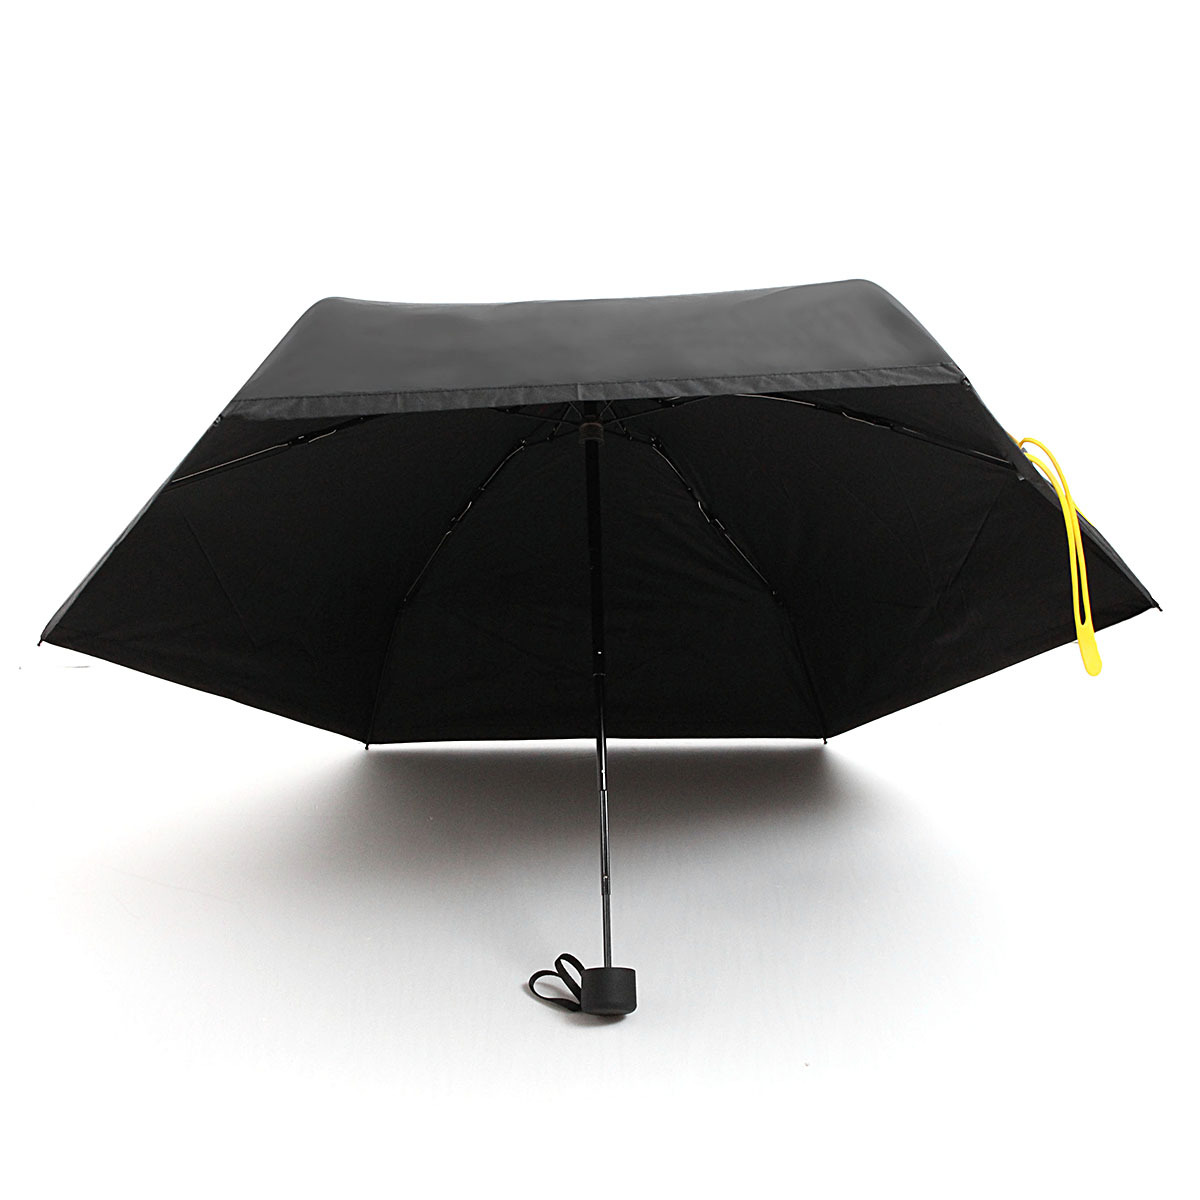 anti uv pocket parasol compact folding windproof rain sun. Black Bedroom Furniture Sets. Home Design Ideas